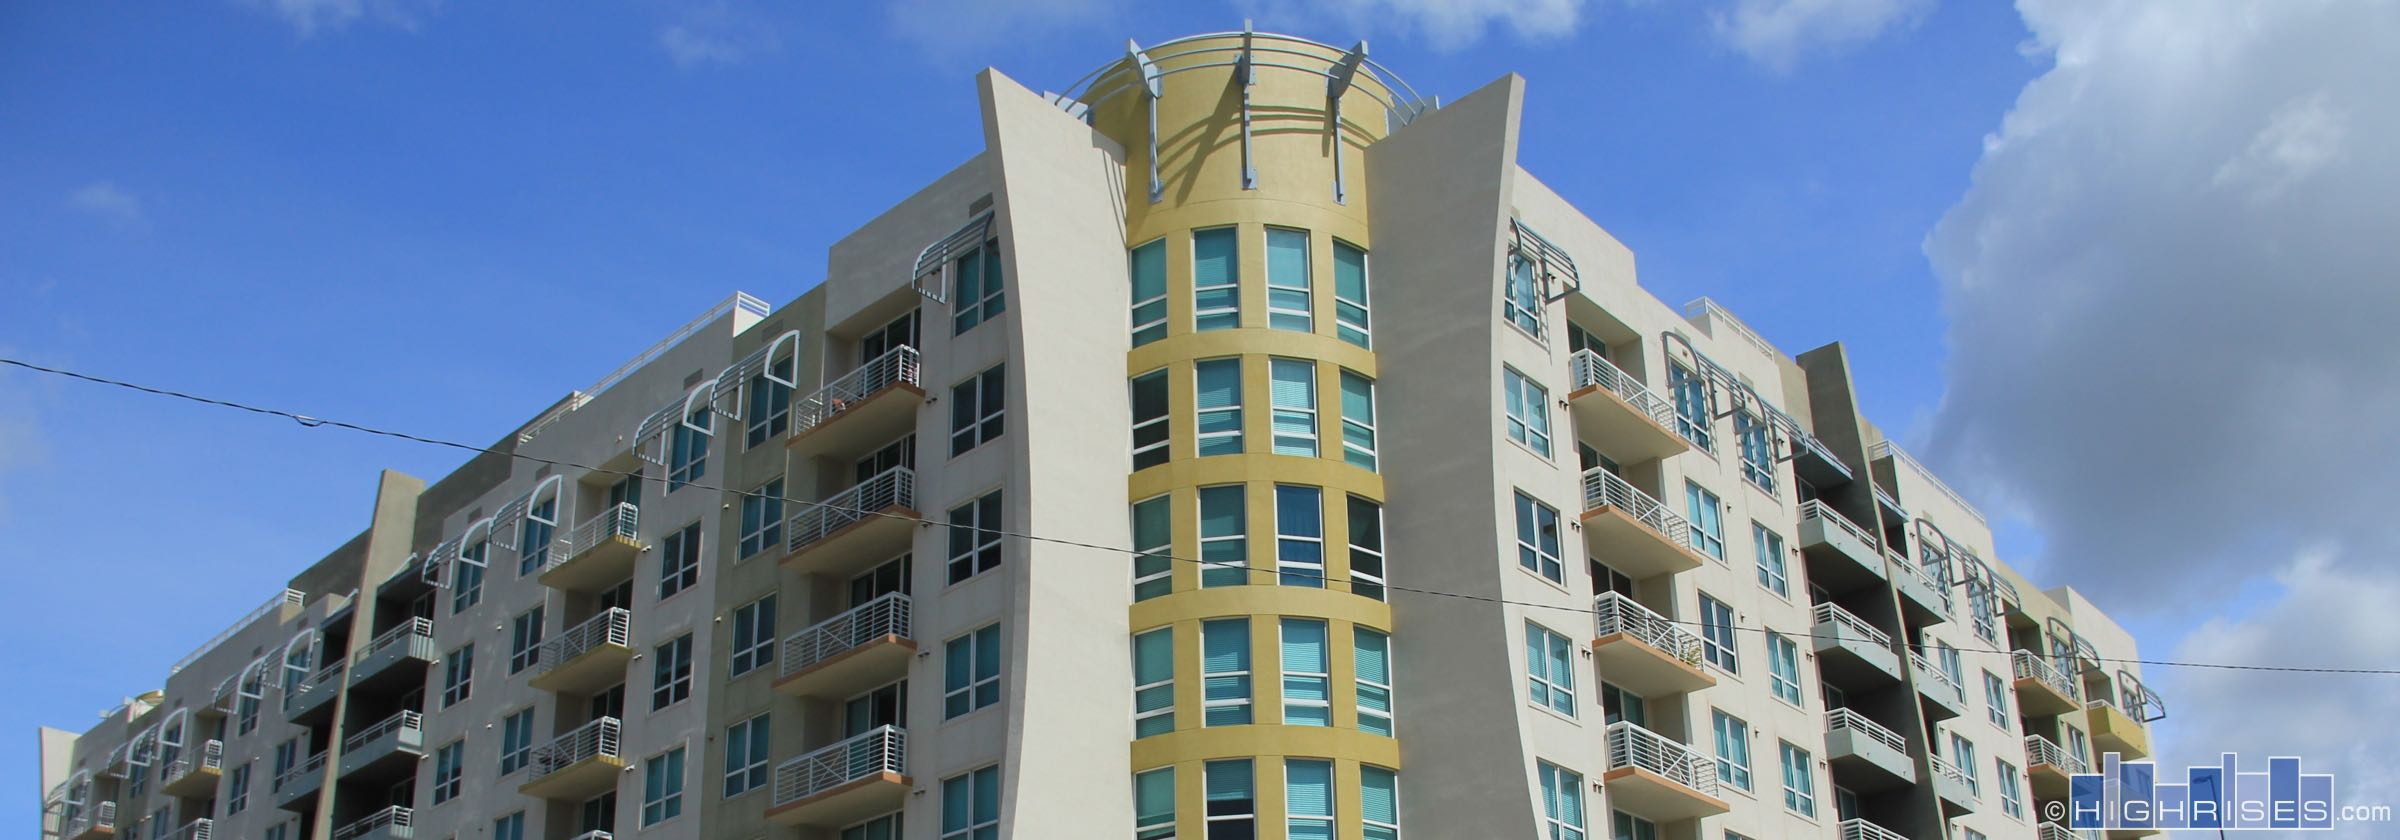 The Slade At Channelside Condos Of Tampa Fl 1190 E